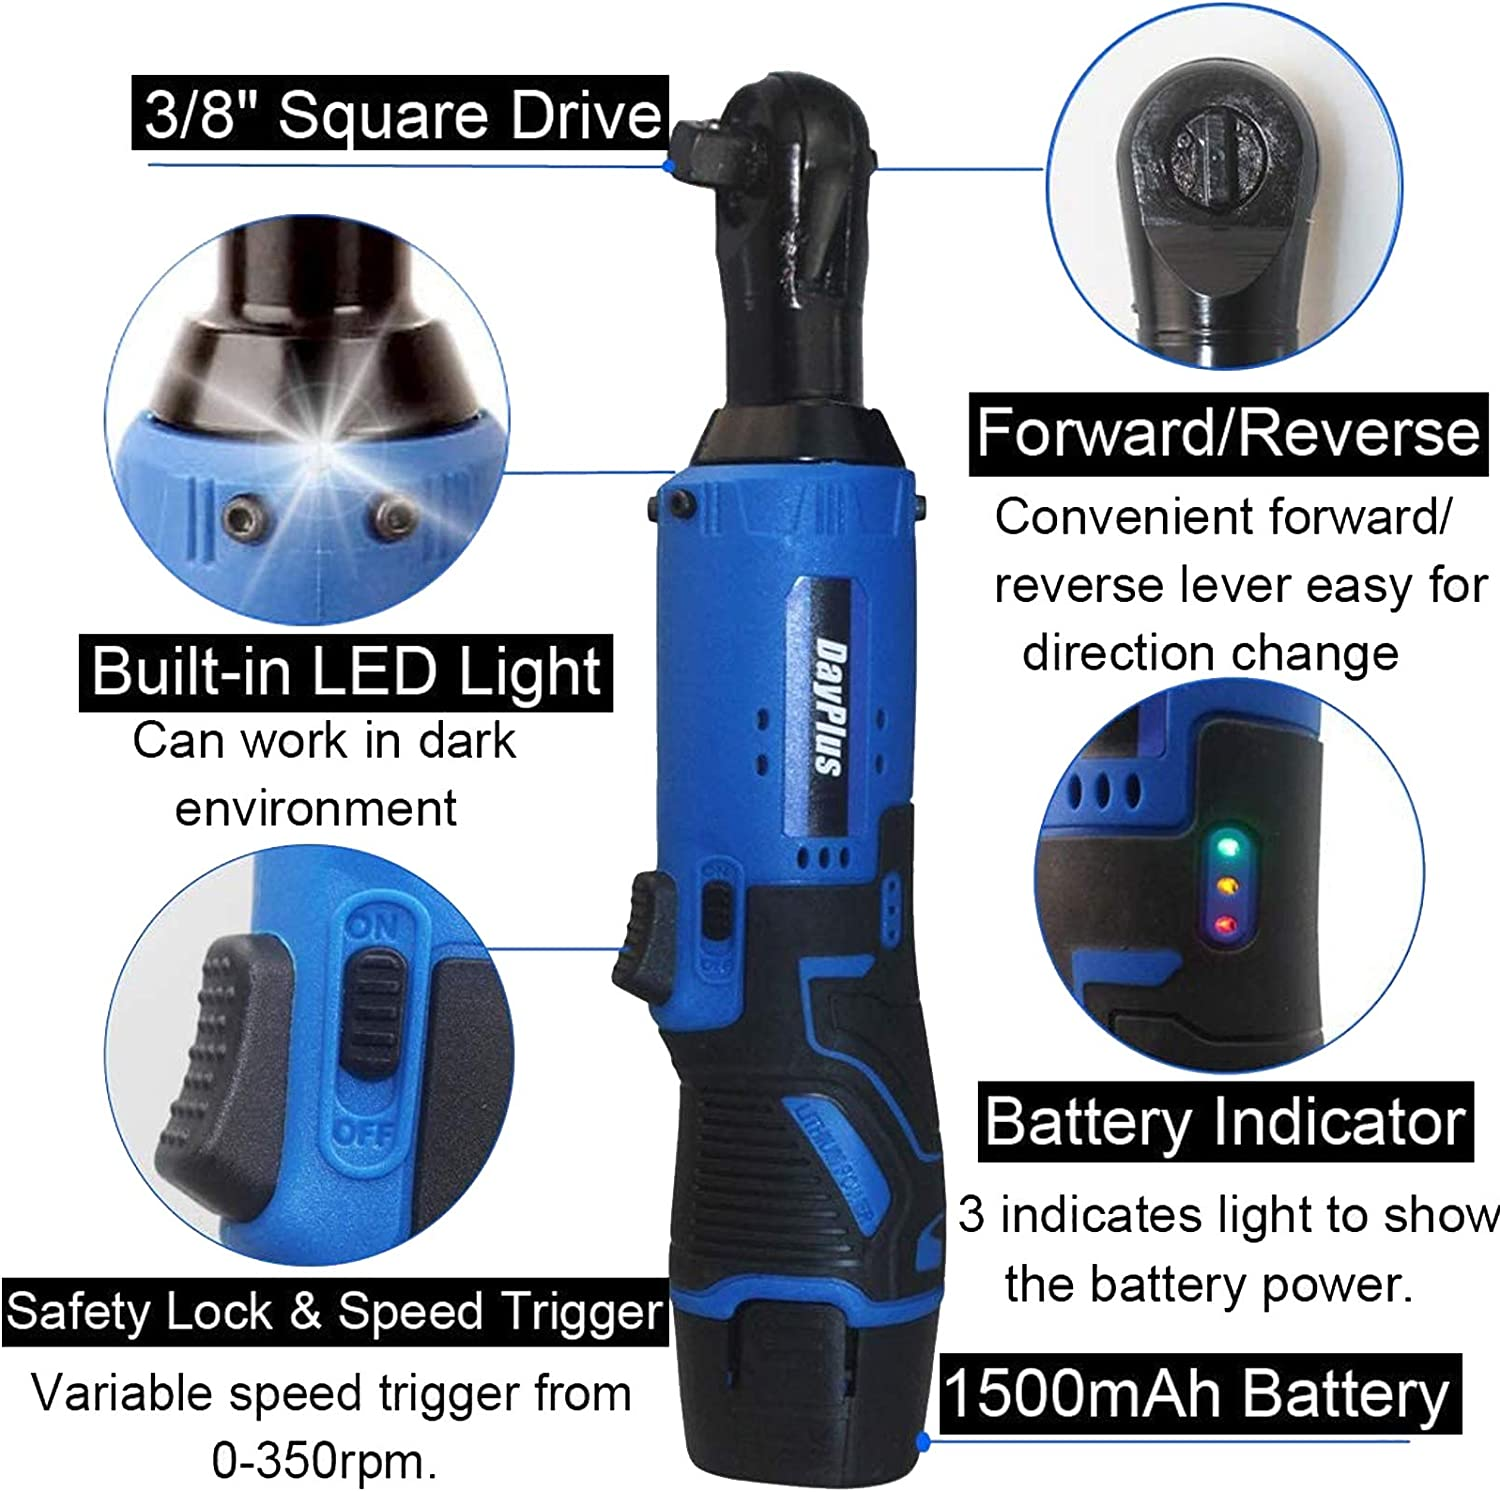 230 RPM Ratchet w//Variable Speed Trigger 3//8 12V Power Ratchet Tool Kit w// 2x 1500mAh Lithium-Ion Batteries 60-Min Fast Charge Portable Power Wrench Tool Kit Cordless Electric Ratchet Wrench Set